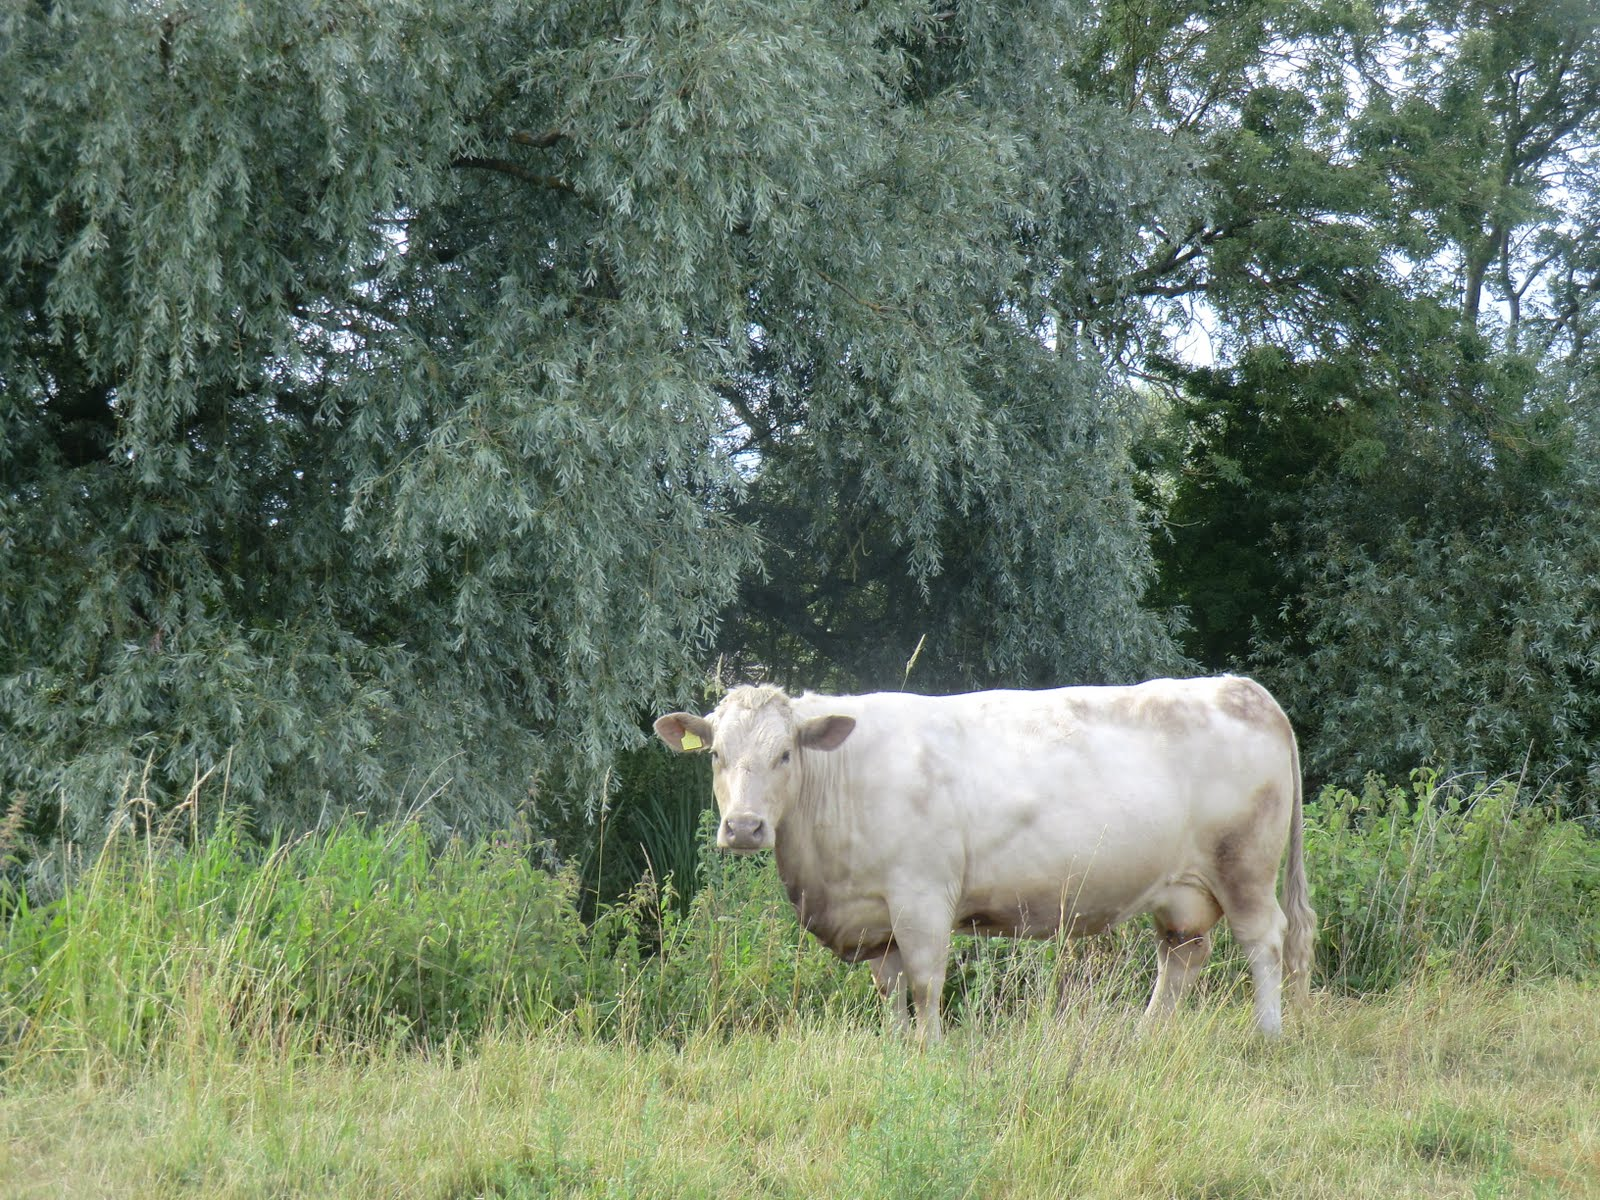 CIMG8947 Placid cow in Godmanchester Nature Reserve